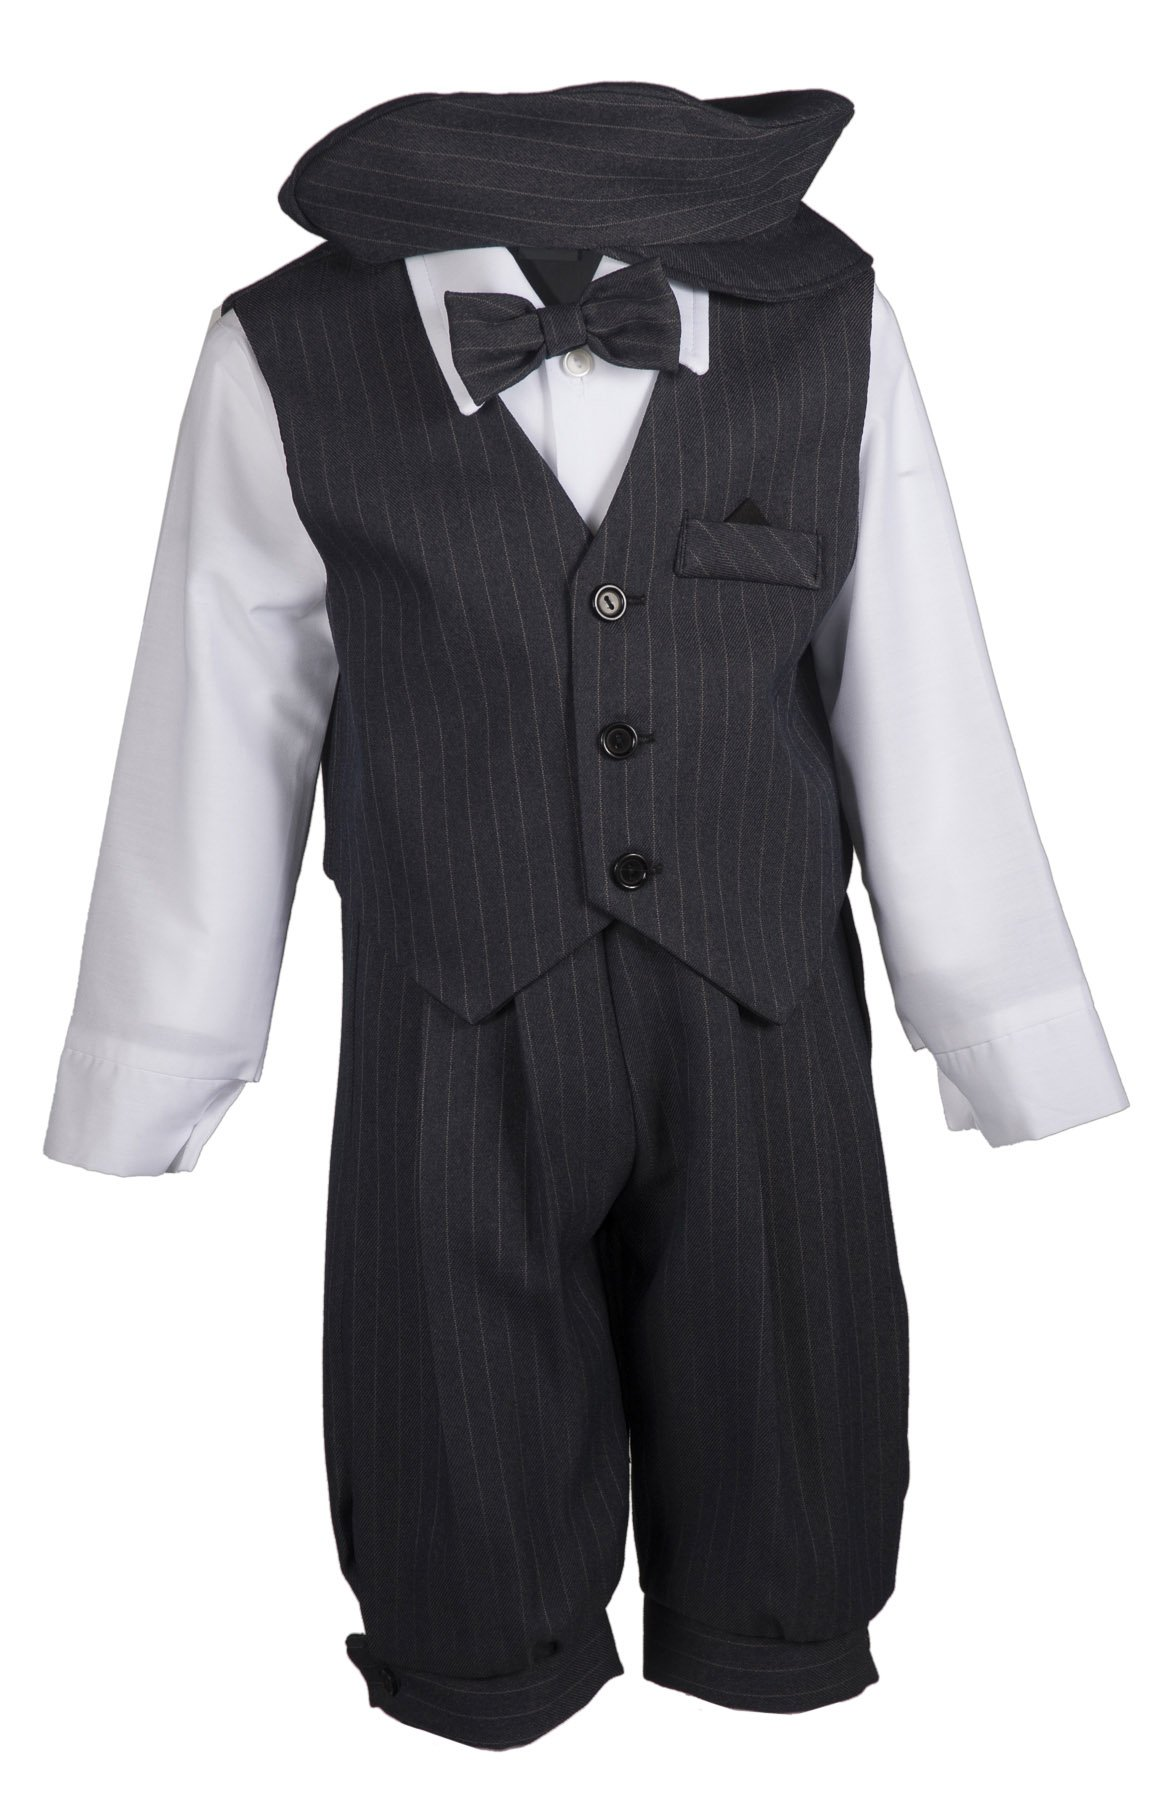 Tuxgear Boys Grey Pinstripe Knicker Set with Vest and Pageboy Hat, 7 Boys by Tuxgear